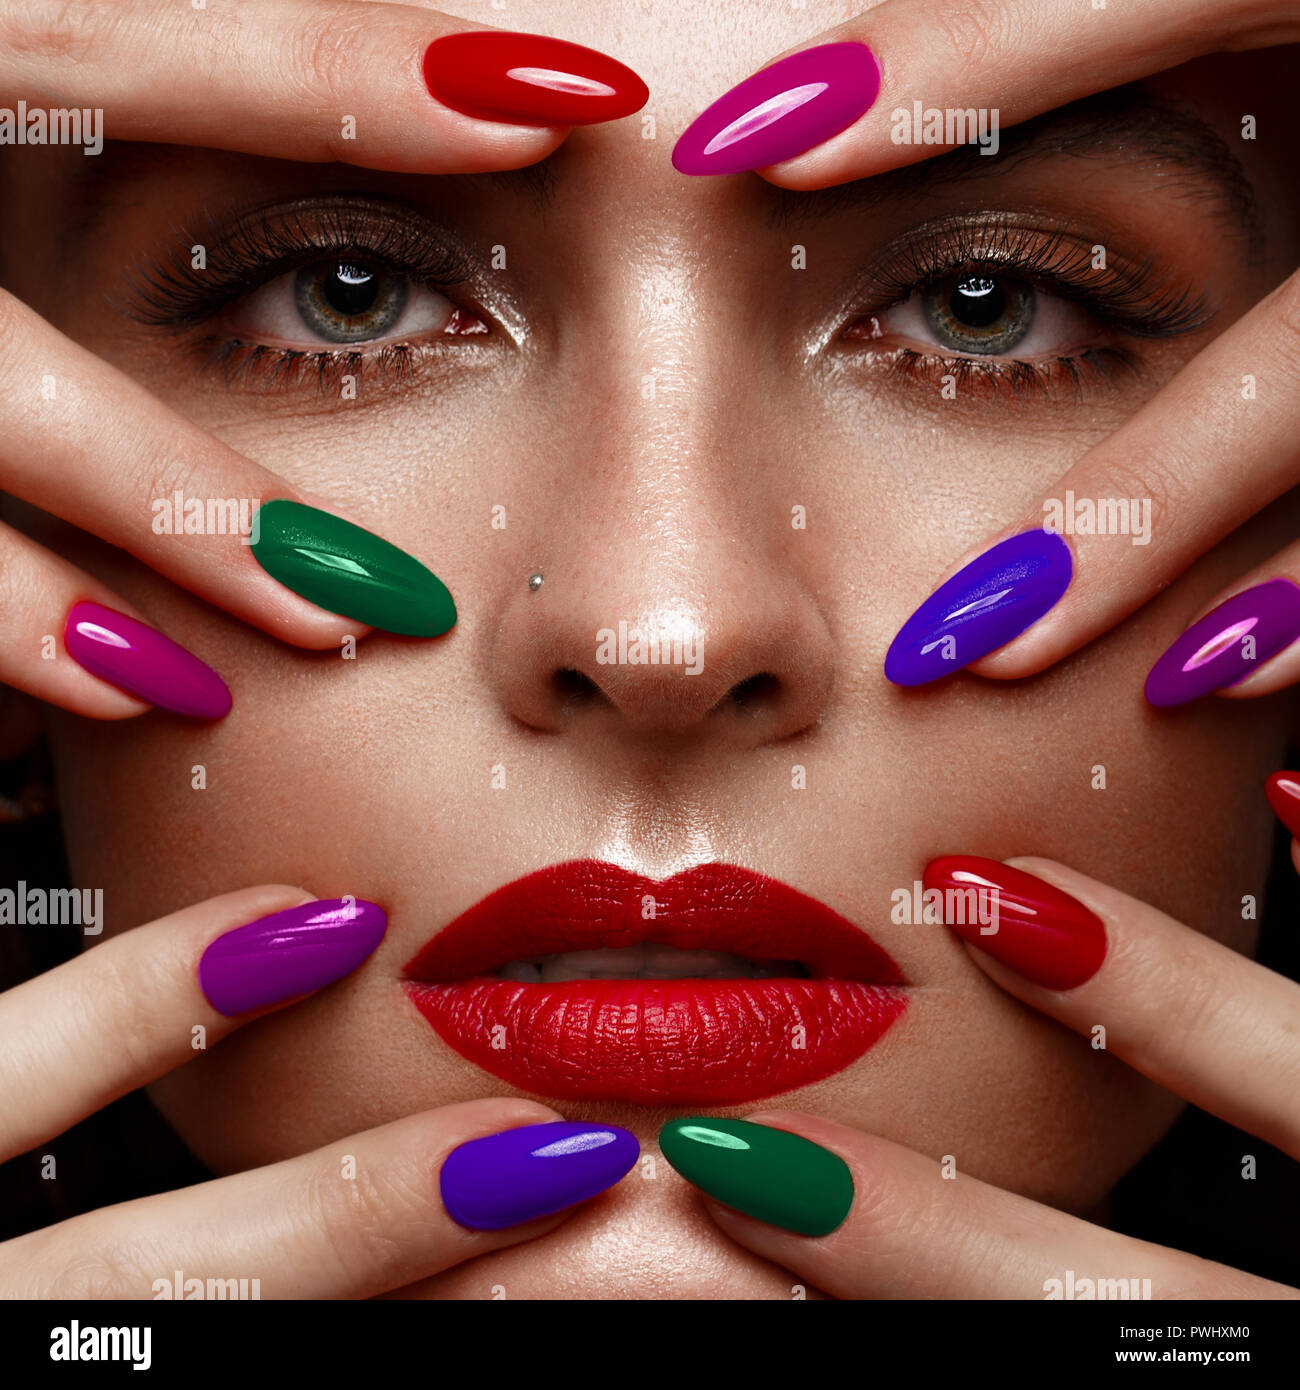 Dynamic Views Very Beautiful And Preity Nails Art Red: Colored Nails Stock Photos & Colored Nails Stock Images